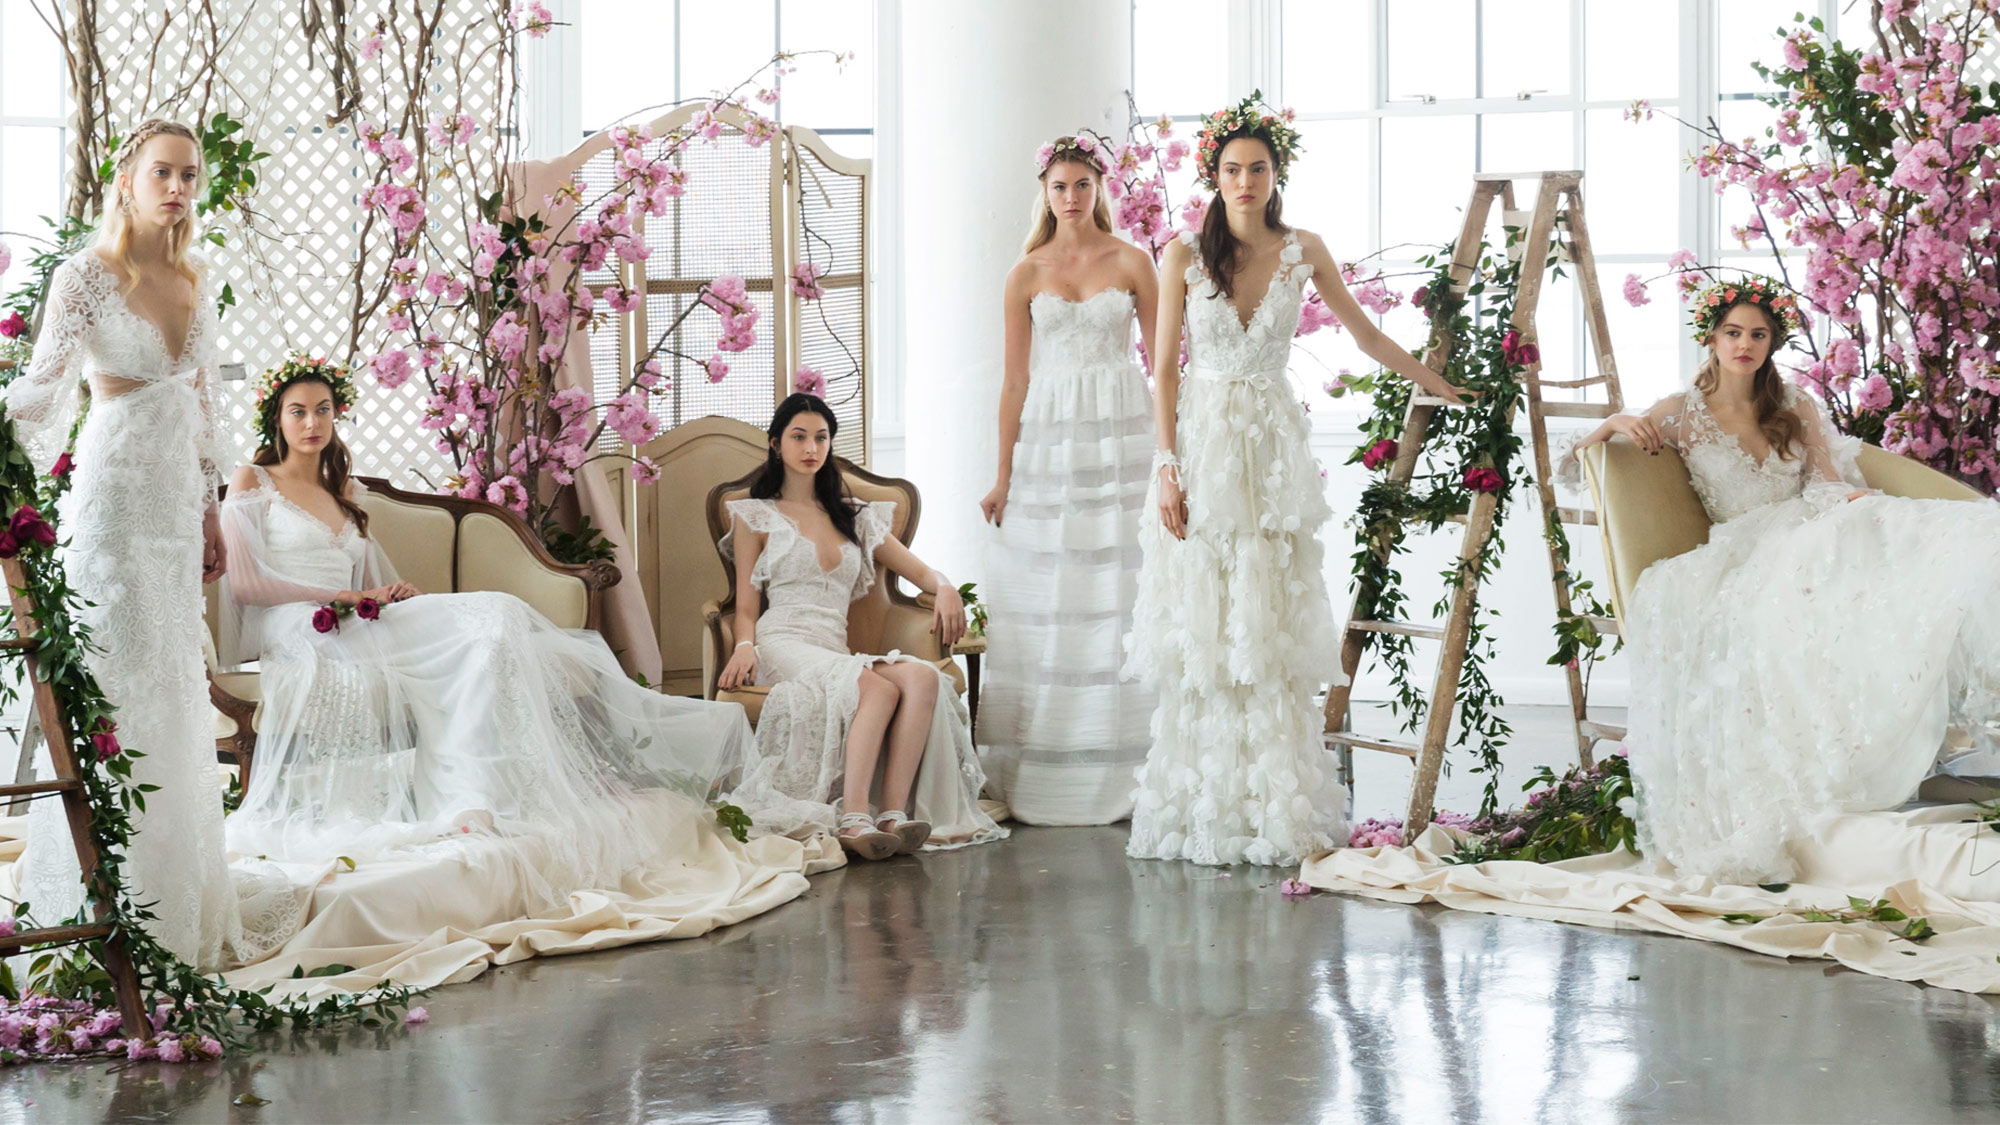 Beautiful Weddings: The Most Beautiful Wedding Dresses From Bridal Fashion Week